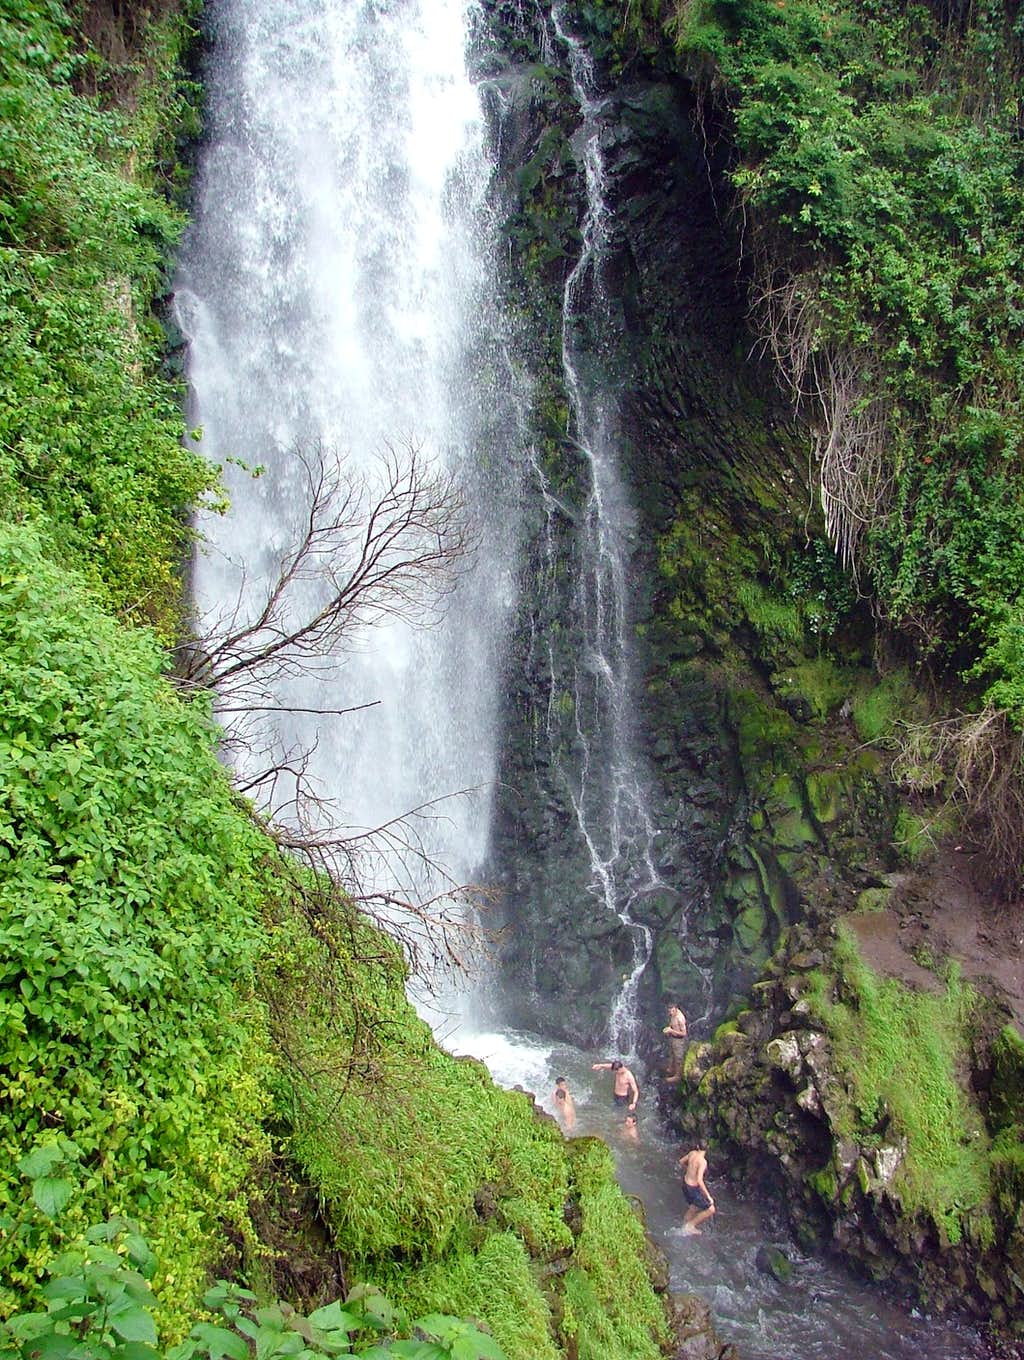 Peguche waterfall.